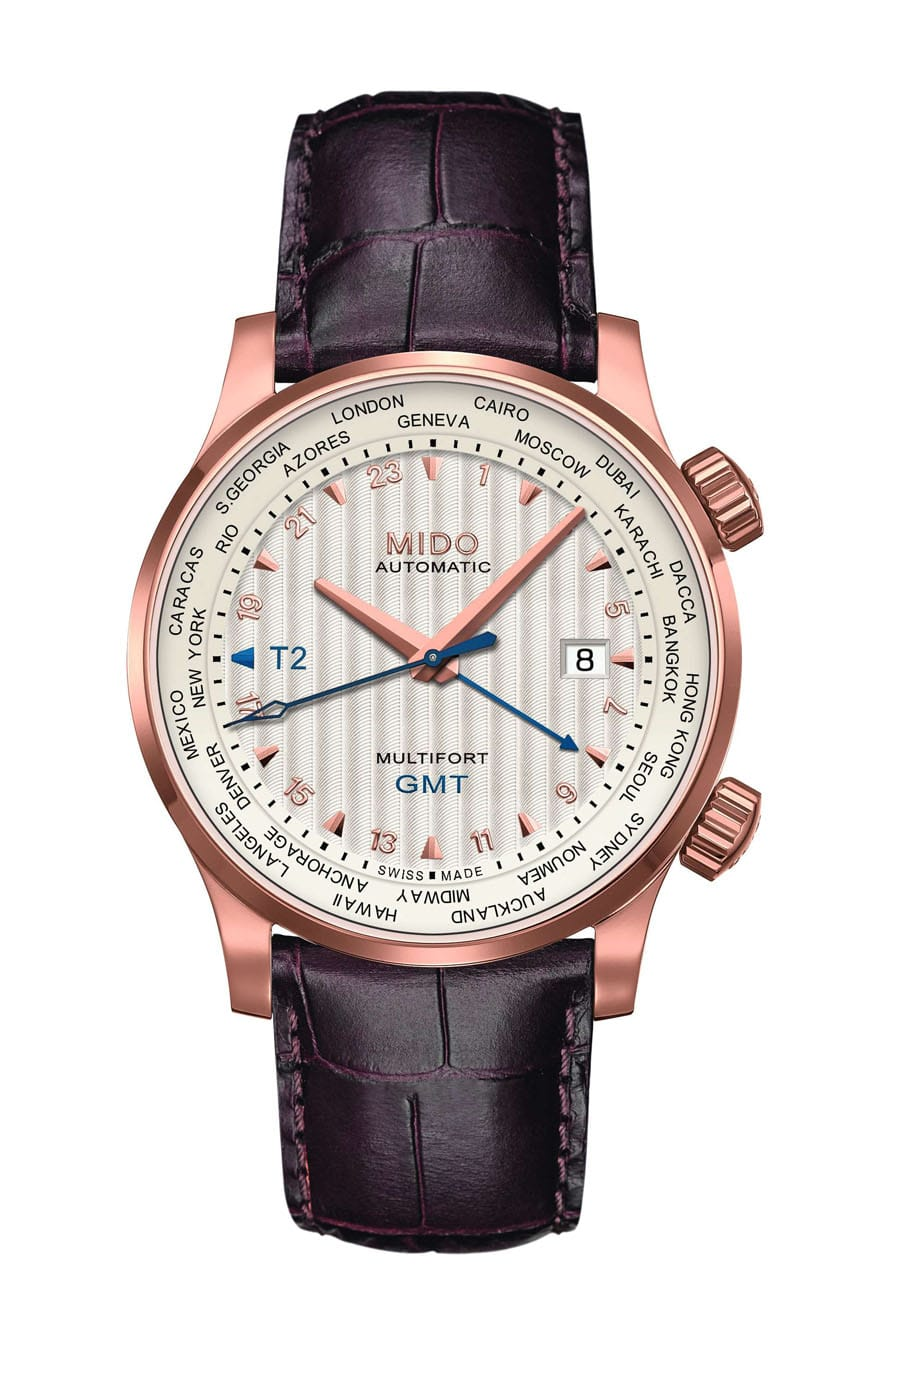 Mido: Multifort GMT, roségold beschichtet